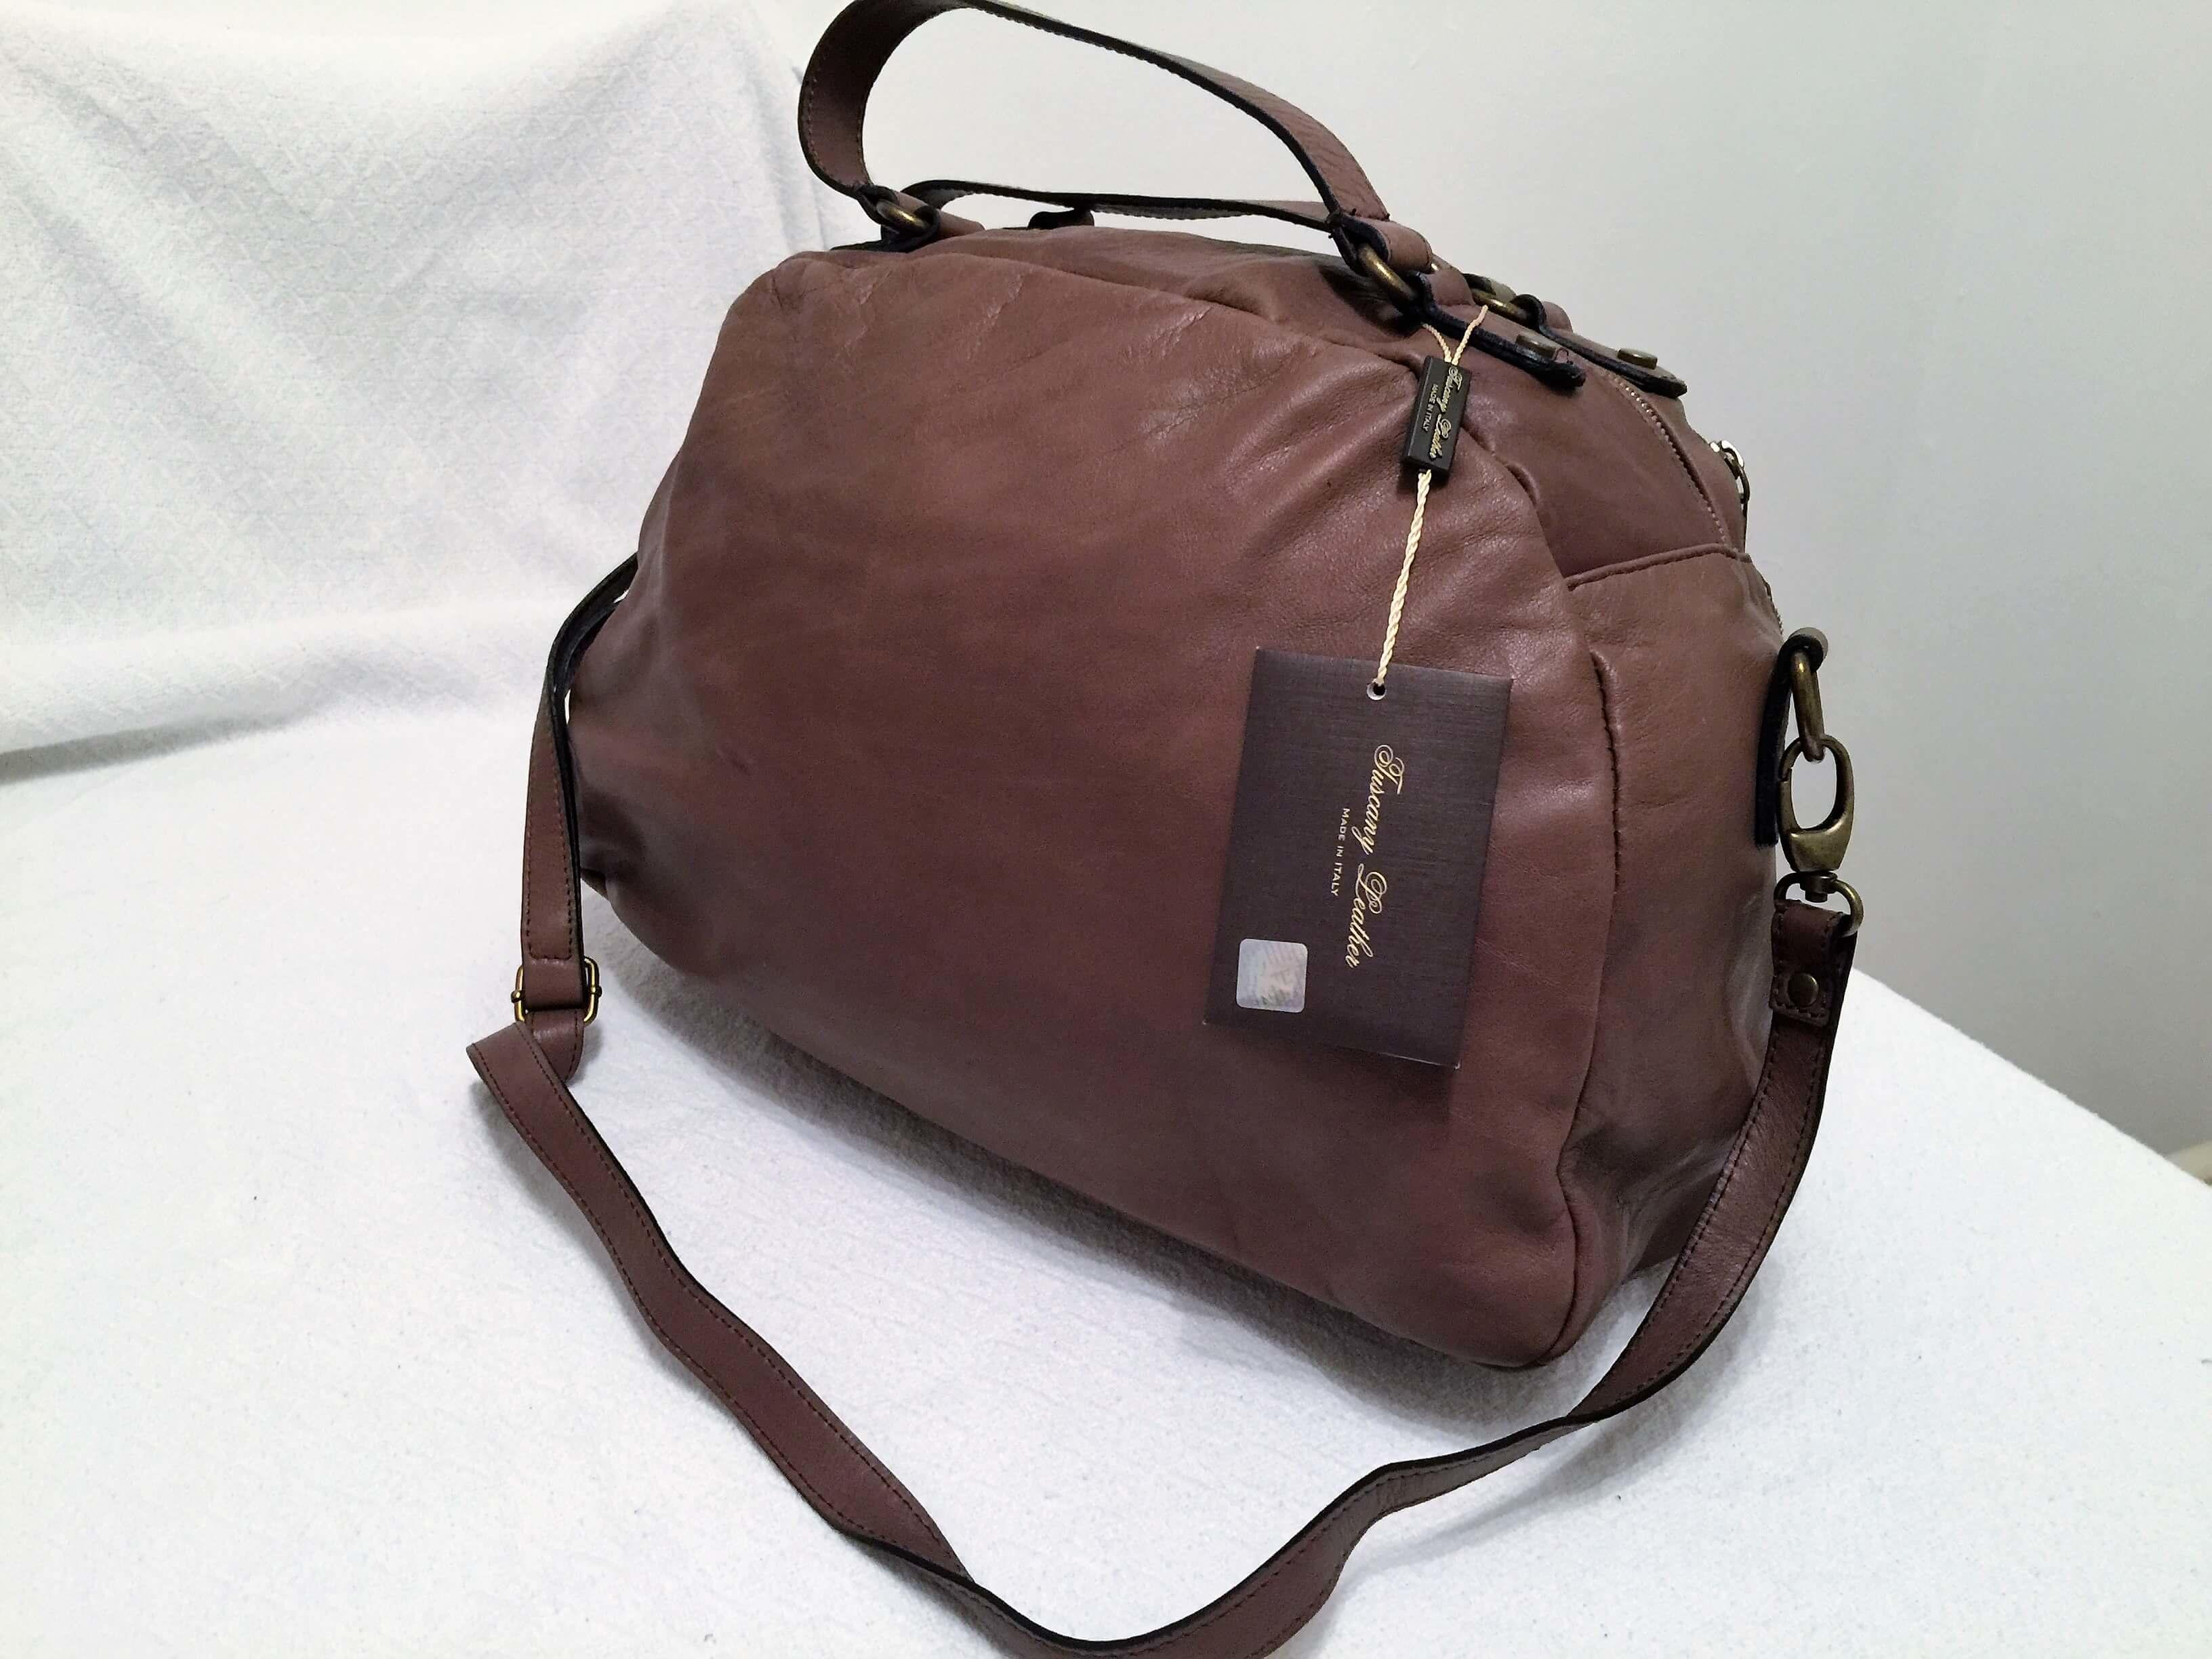 1a88add1f2 ... Outlet - TL141149 Sporty Leather Mini Travel Bag -Overnight-Luggage-Gym-Duffel